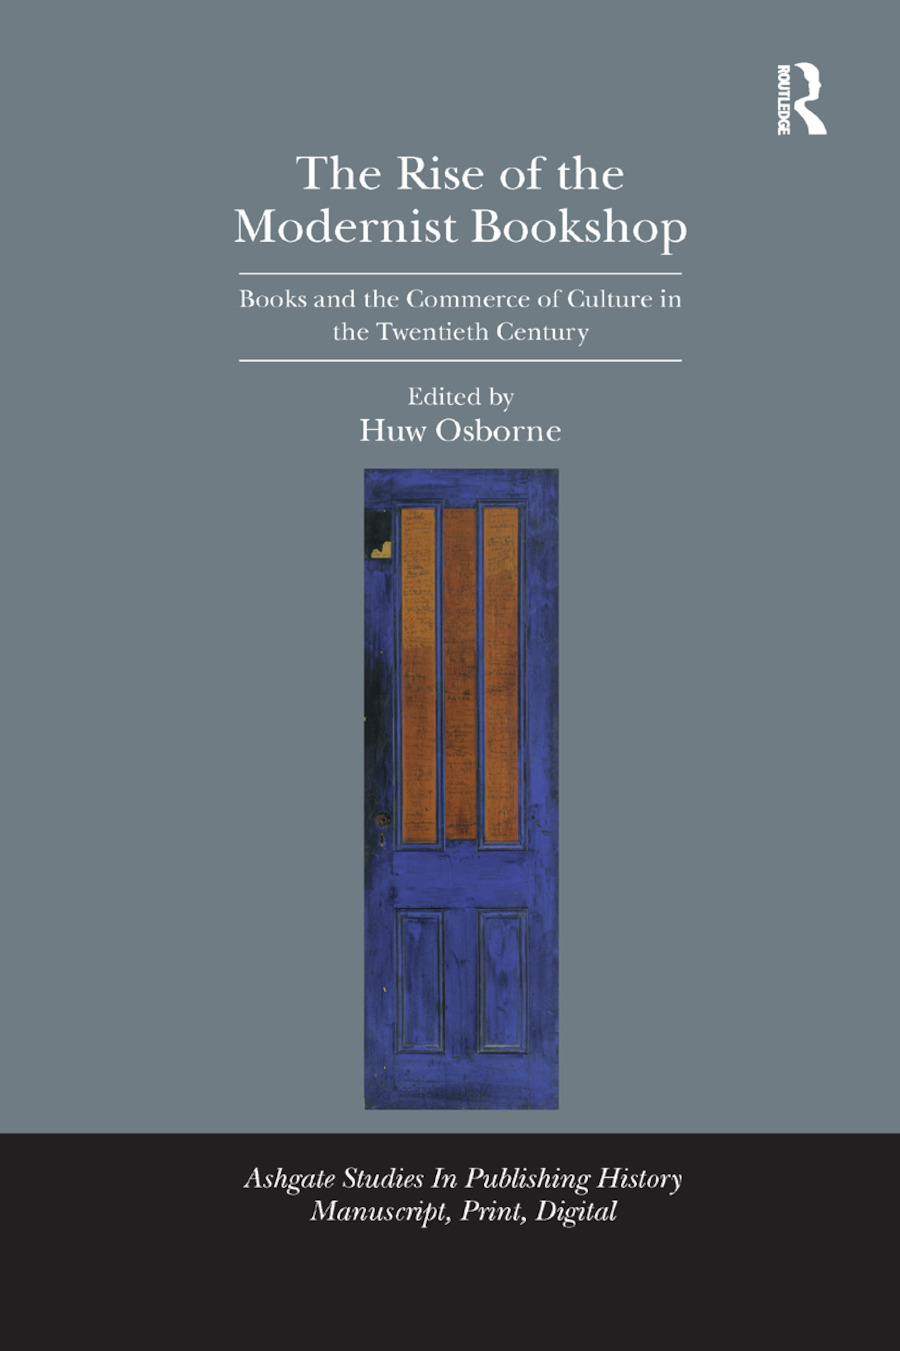 The Rise of the Modernist Bookshop: Books and the Commerce of Culture in the Twentieth Century book cover